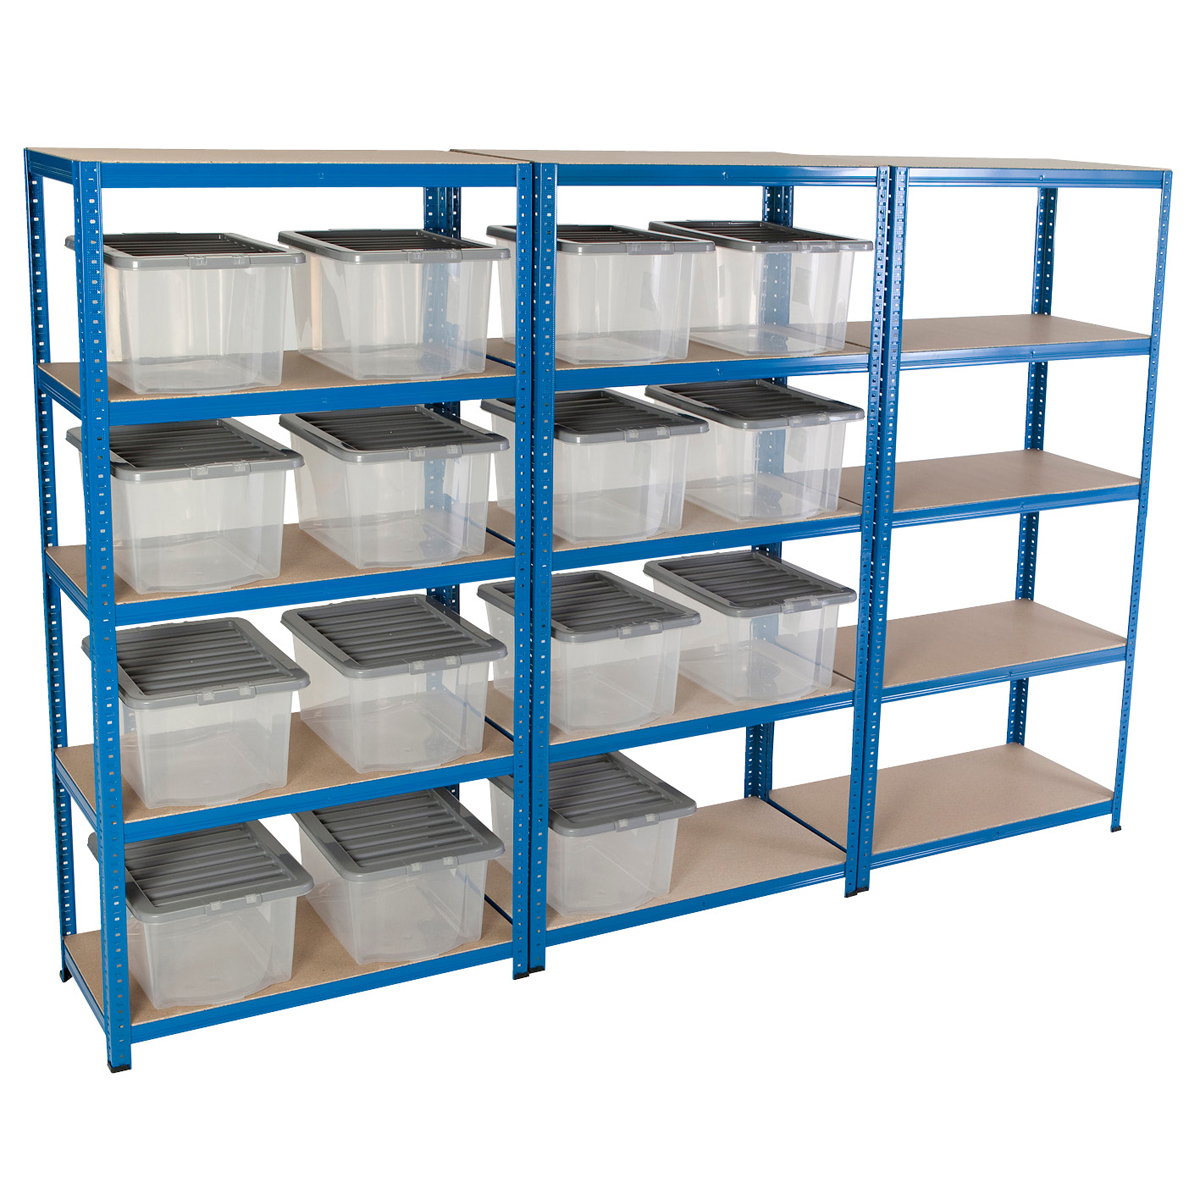 BiGDUG 3 Shelving Storage Bays 1780 x 900 x 450 & 15 x VUB30's